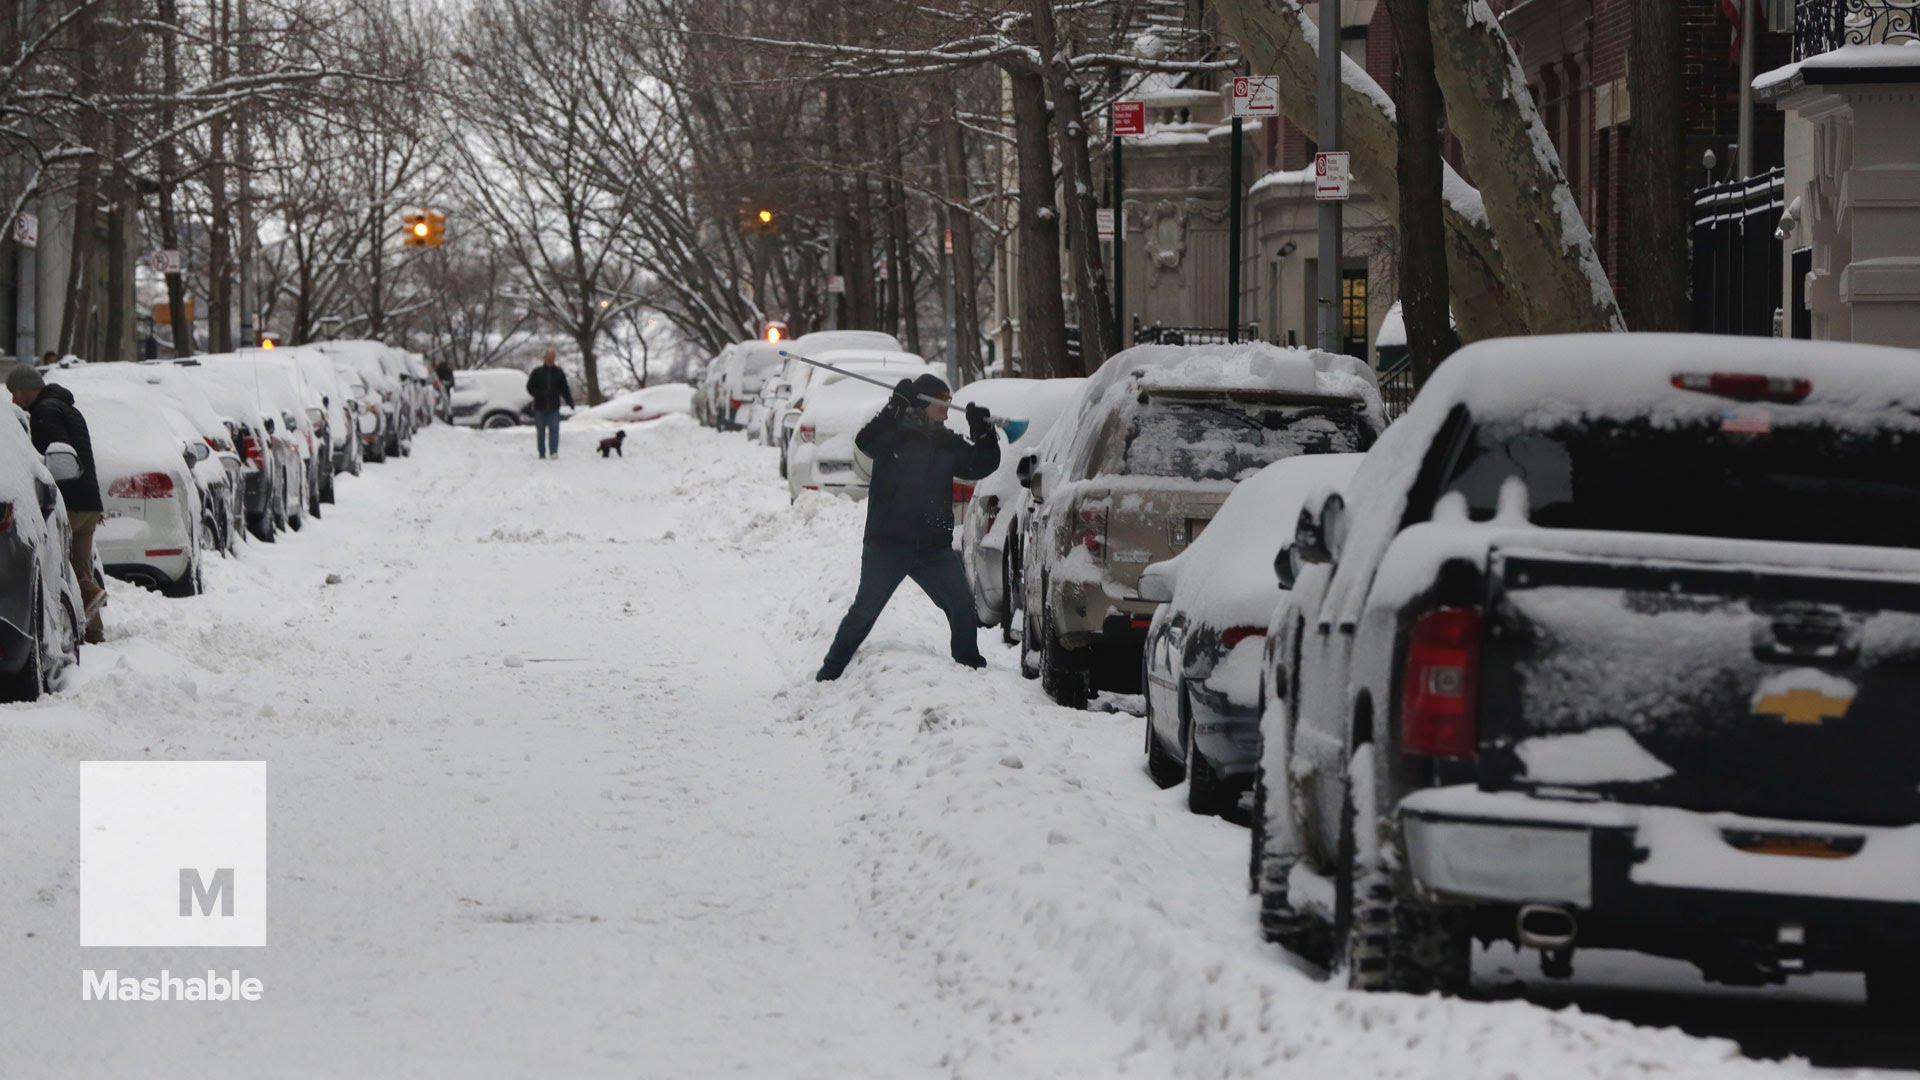 Rain or sun, wind or snow, nothing stops a delivery man